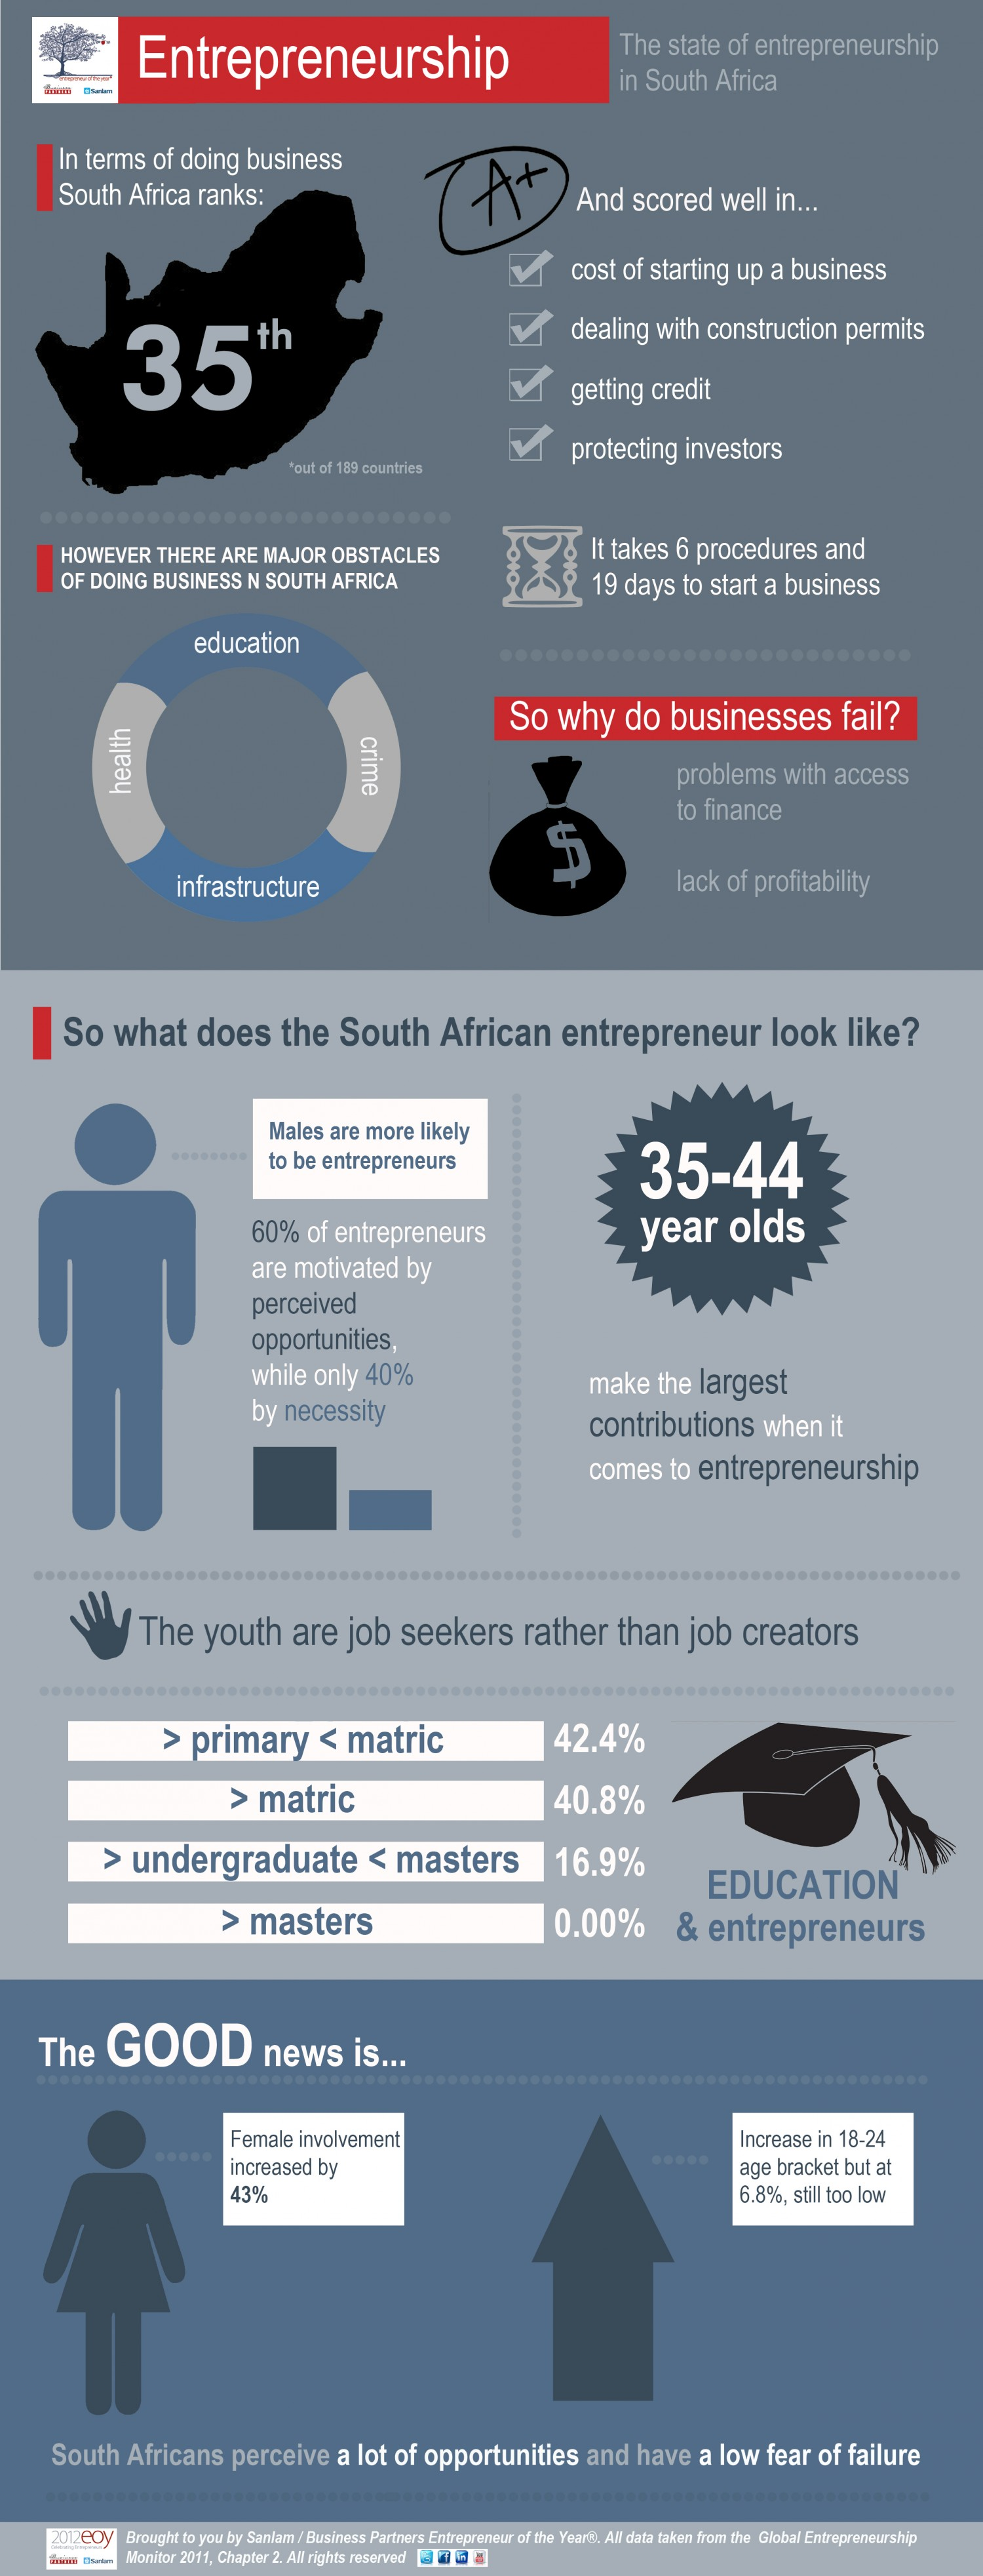 The state of entrepreneurship in South Africa